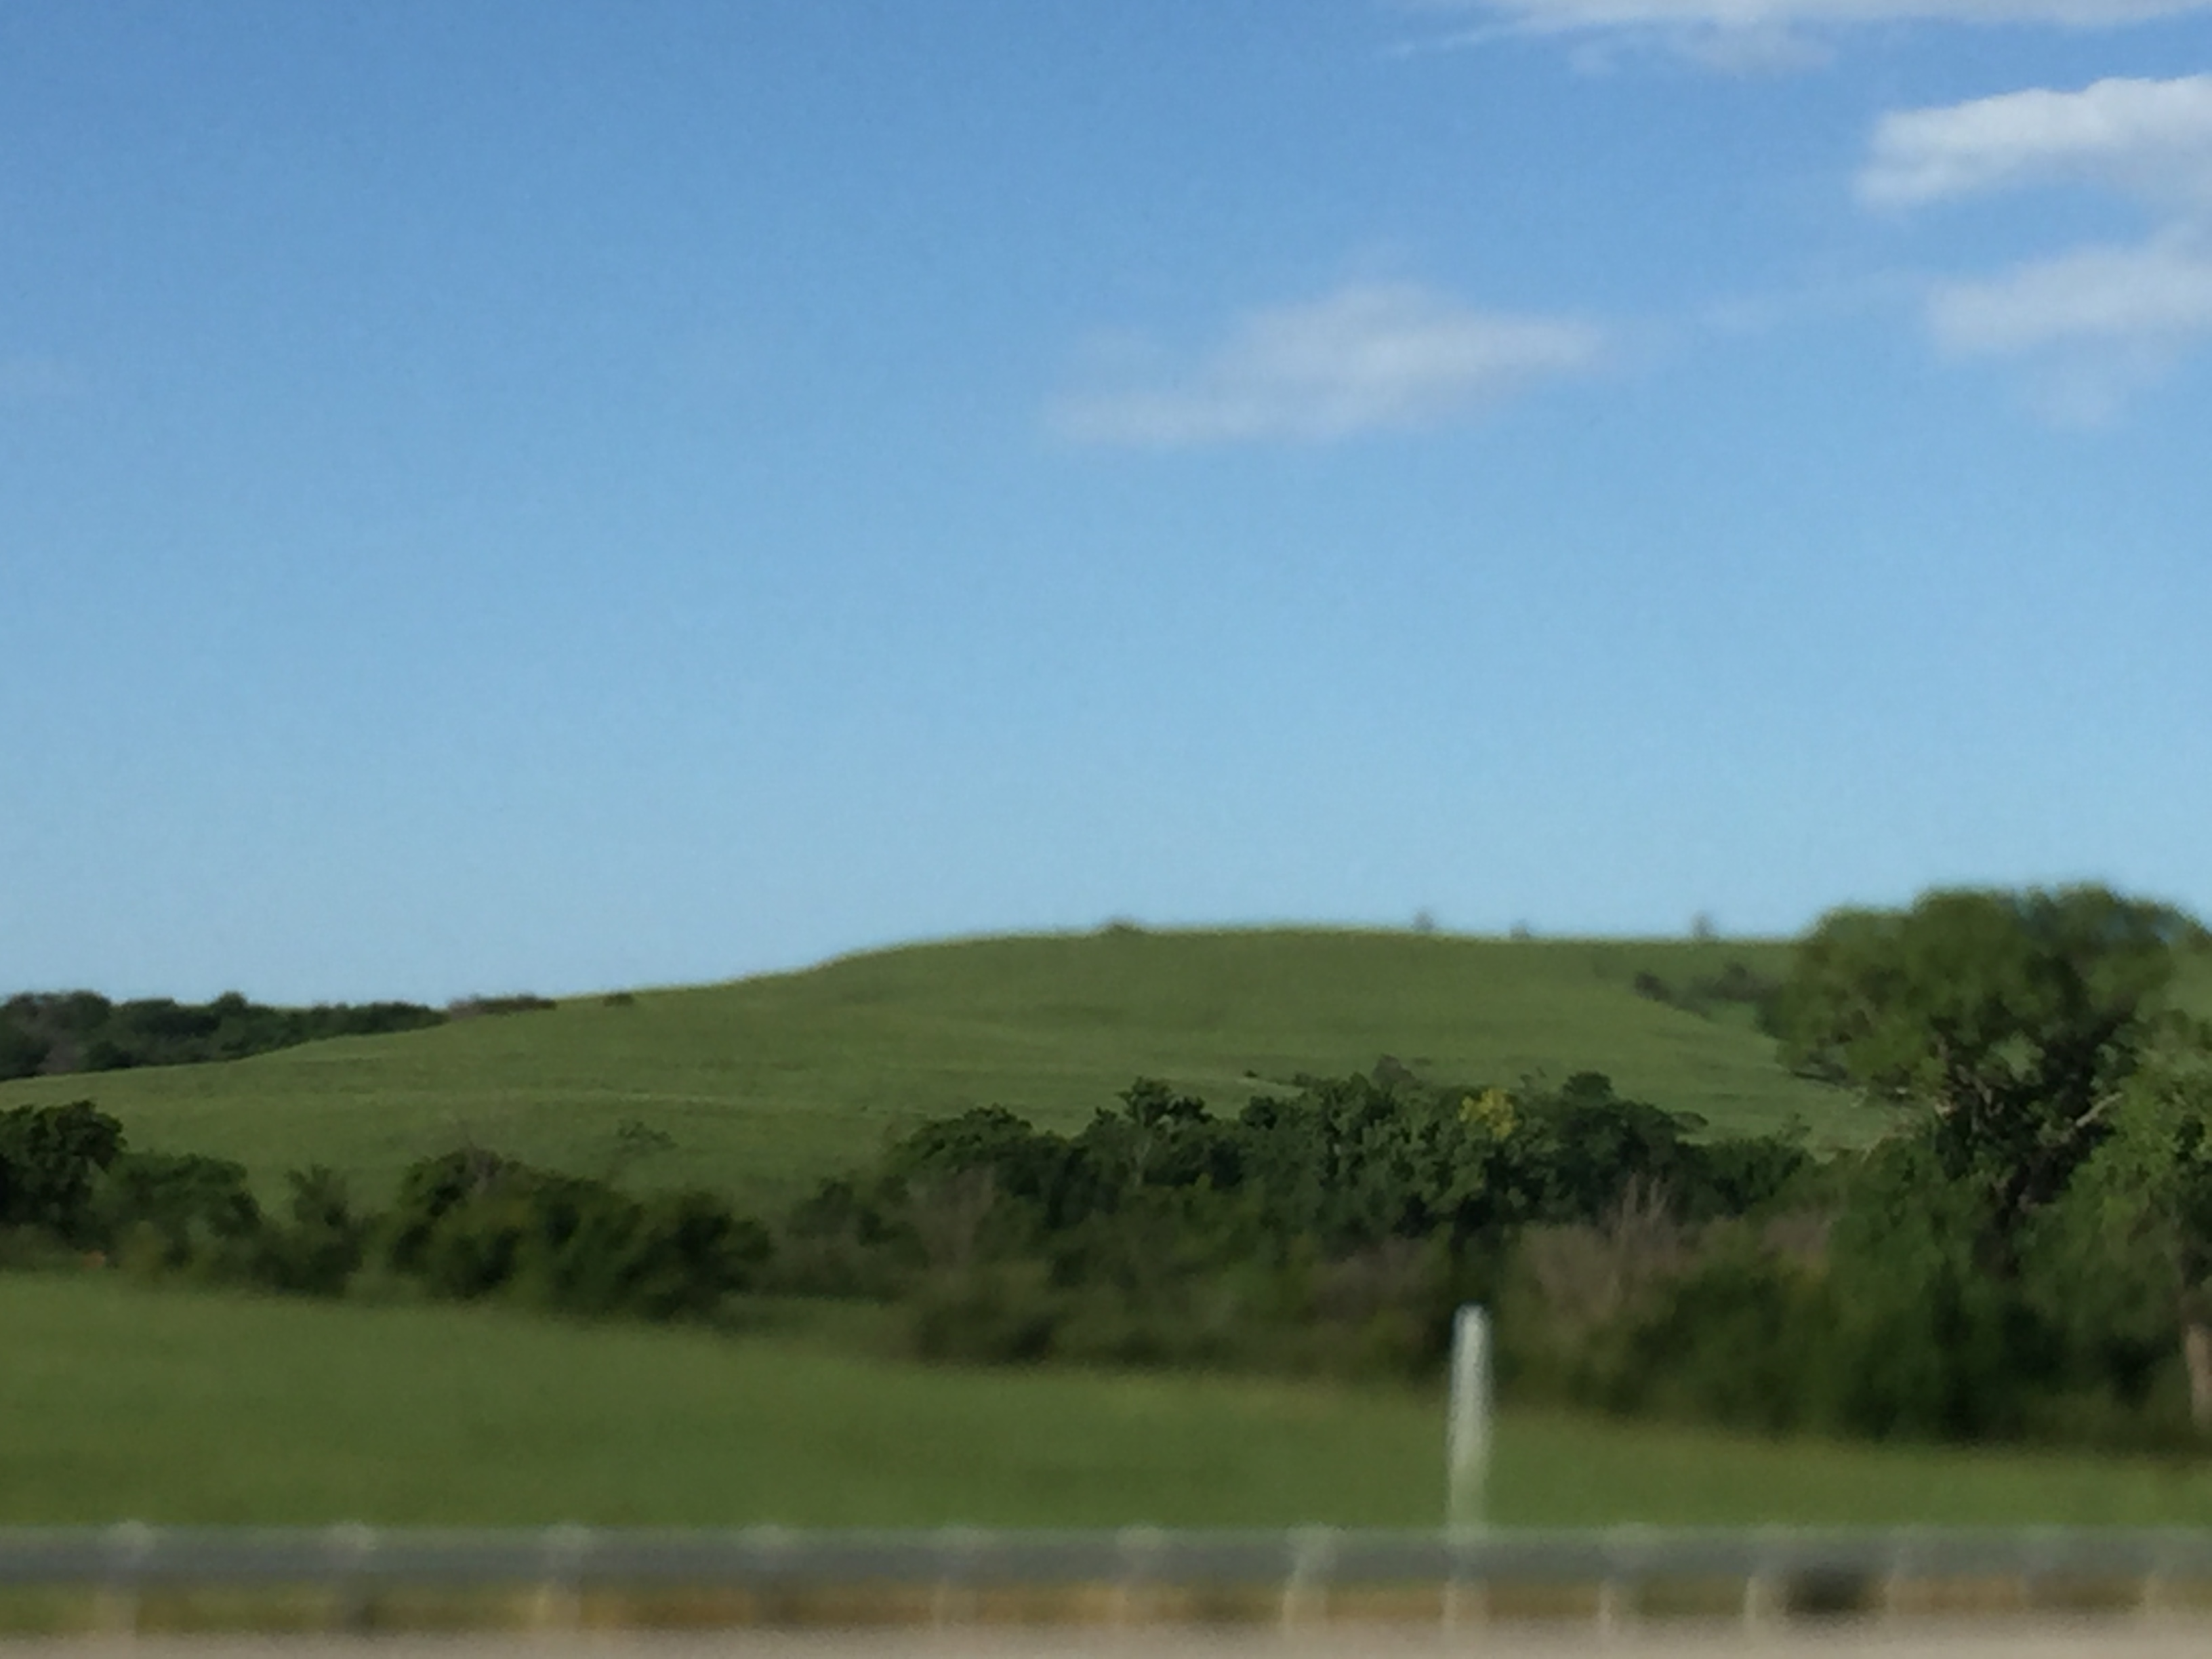 The Flint Hills are still green.